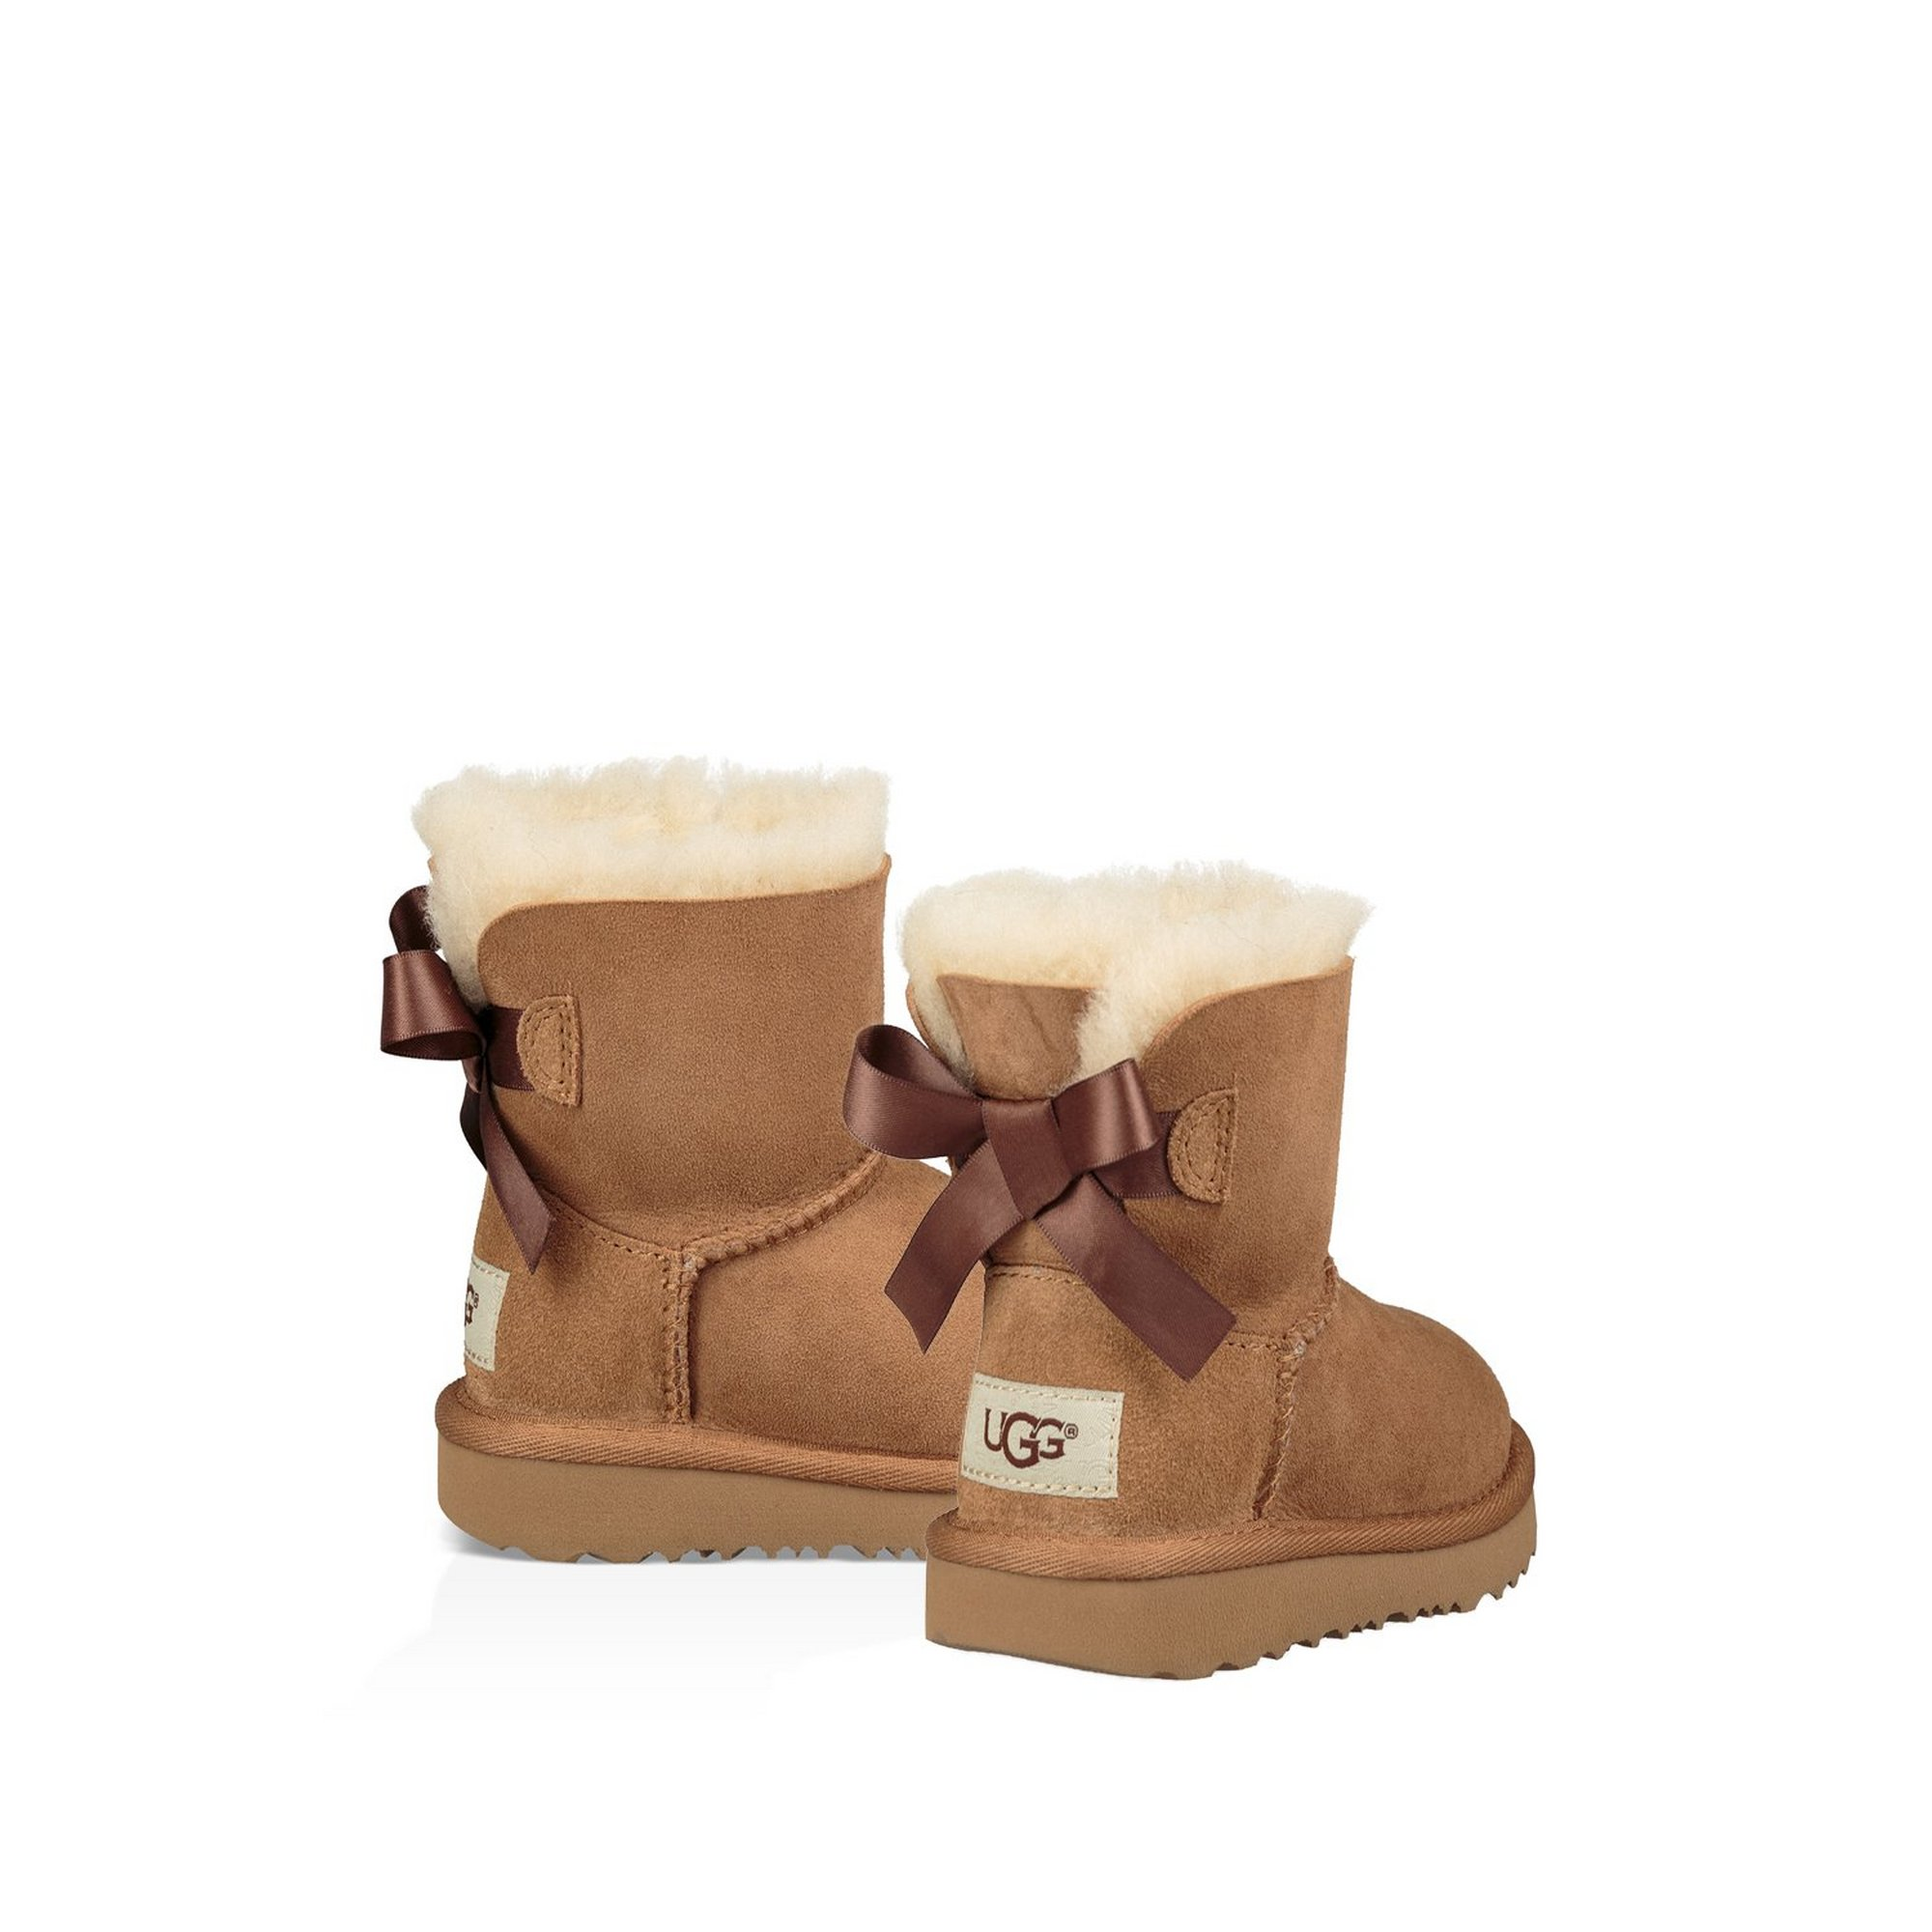 Image of UGG Mini Bailey Bow 2 Boots